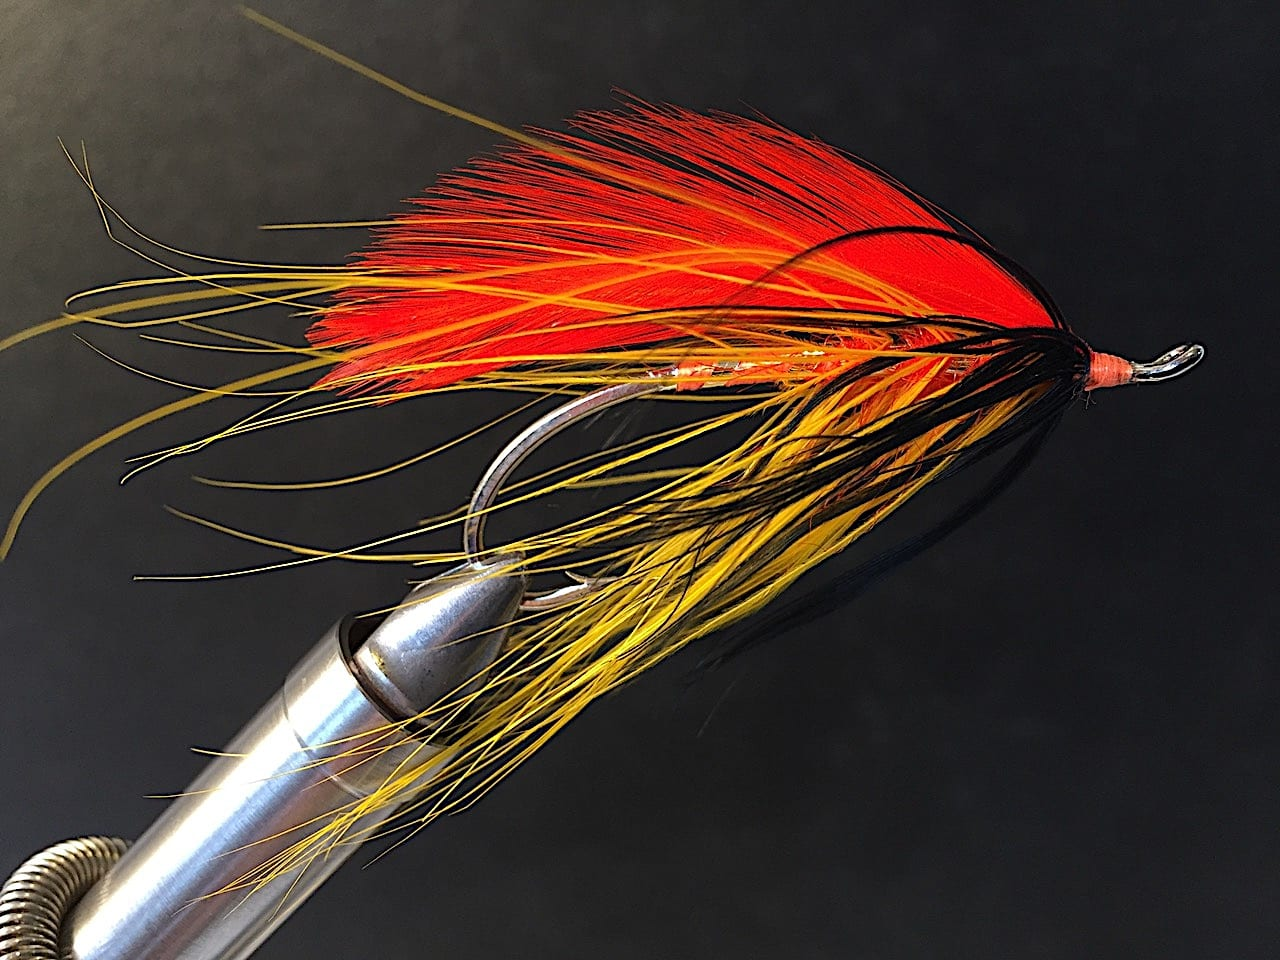 Sol Duc Spey Fly - Spey Flies